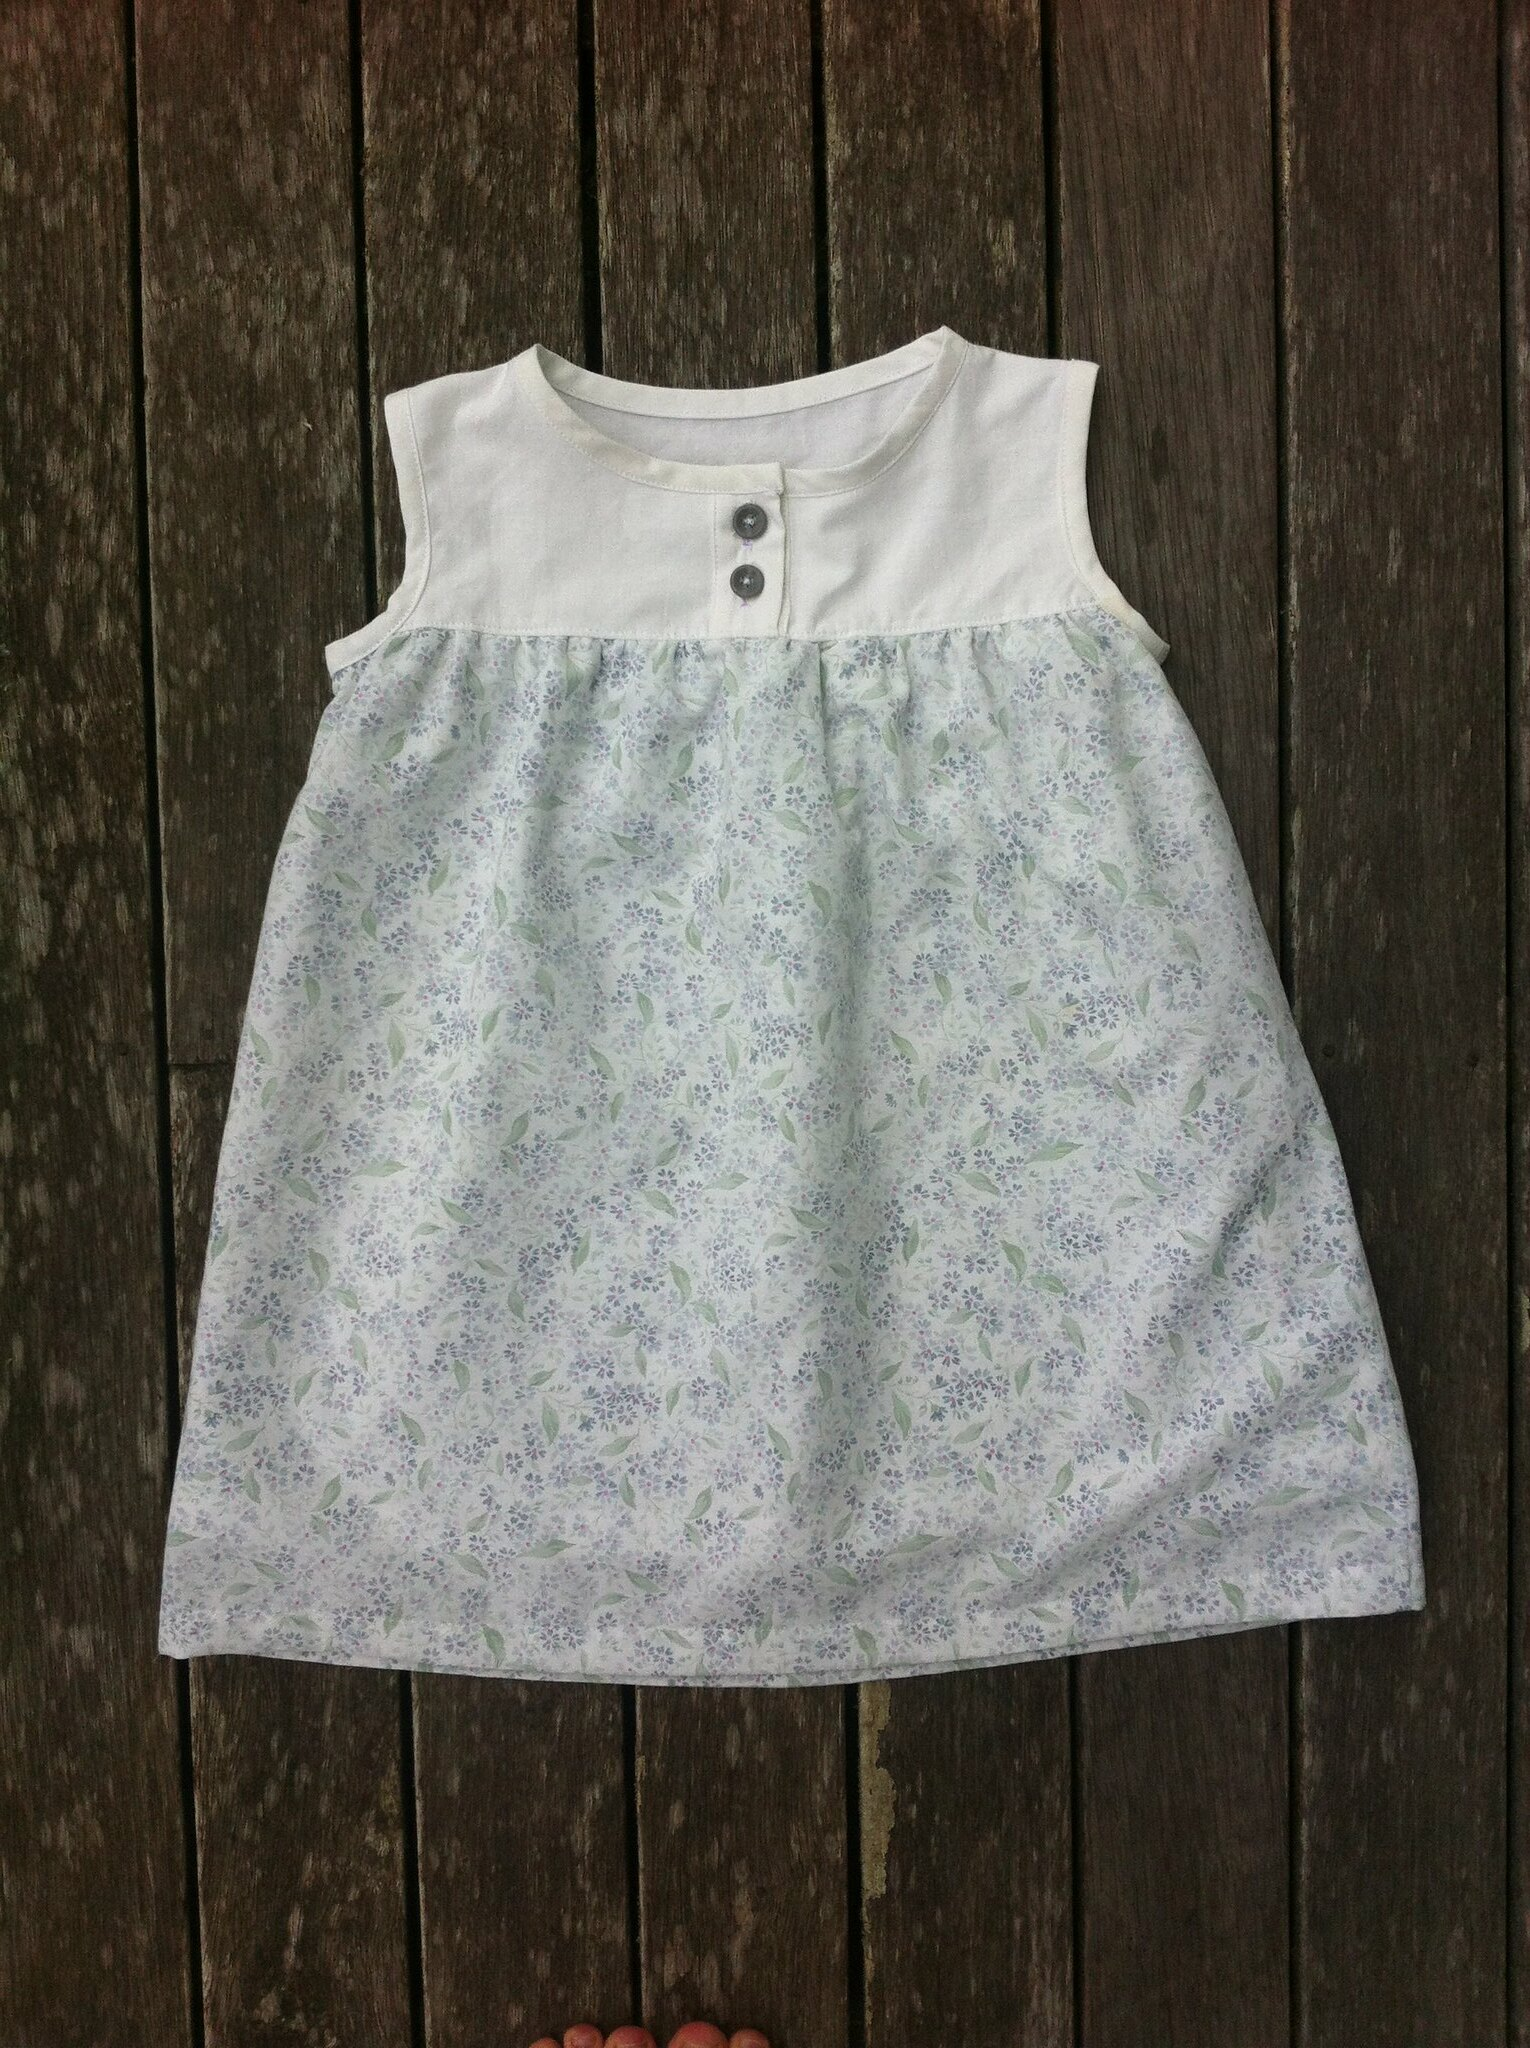 In Stitches, sewing, sew, Olivia top, dress